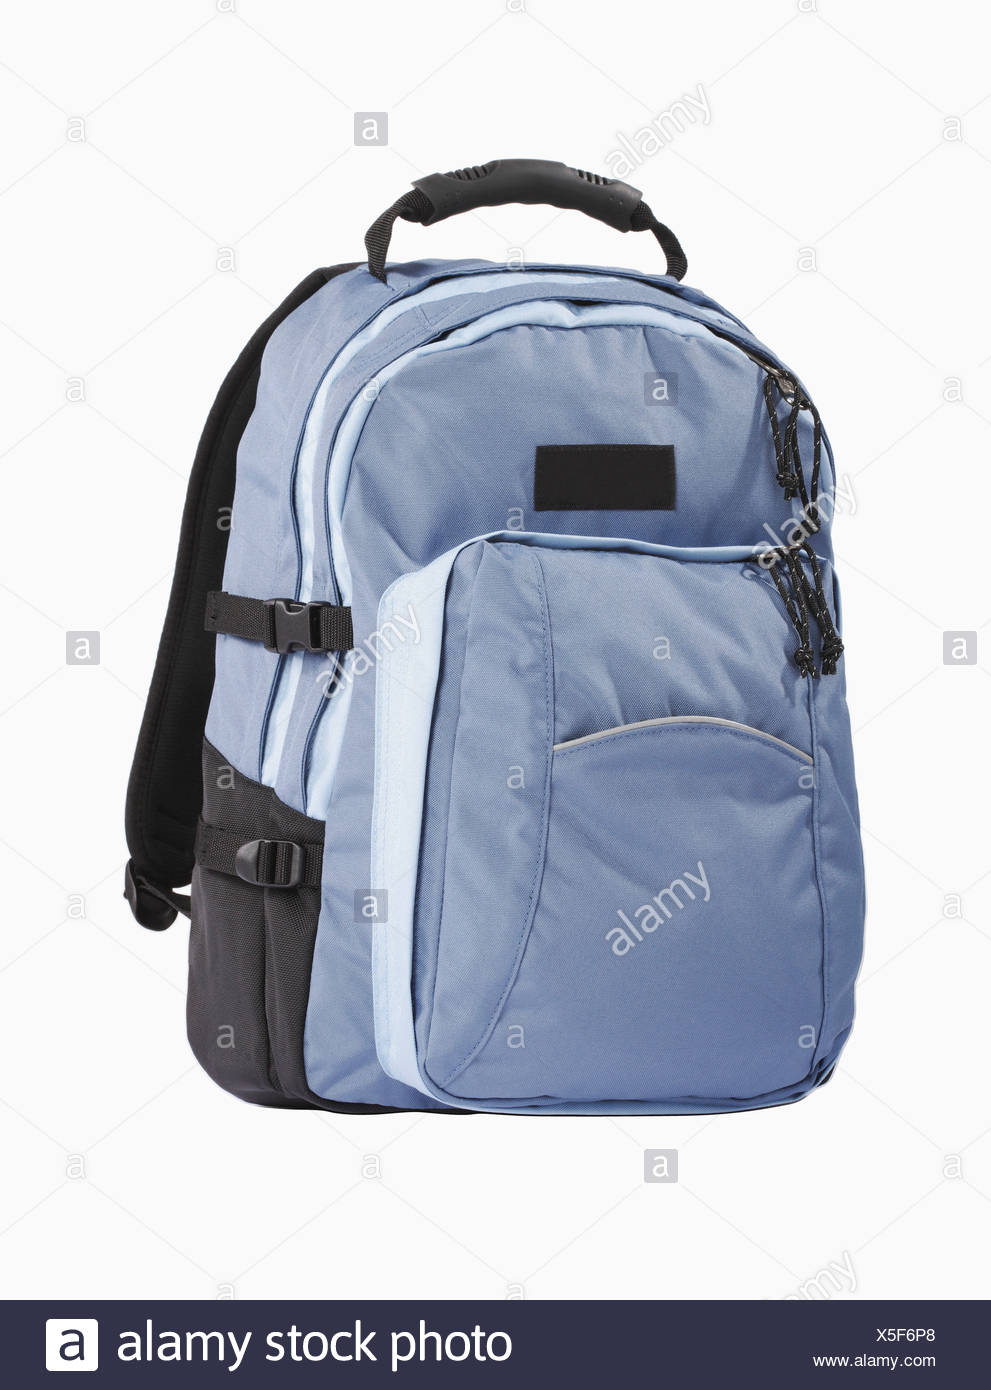 Backpack against white background, close-up - Stock Image